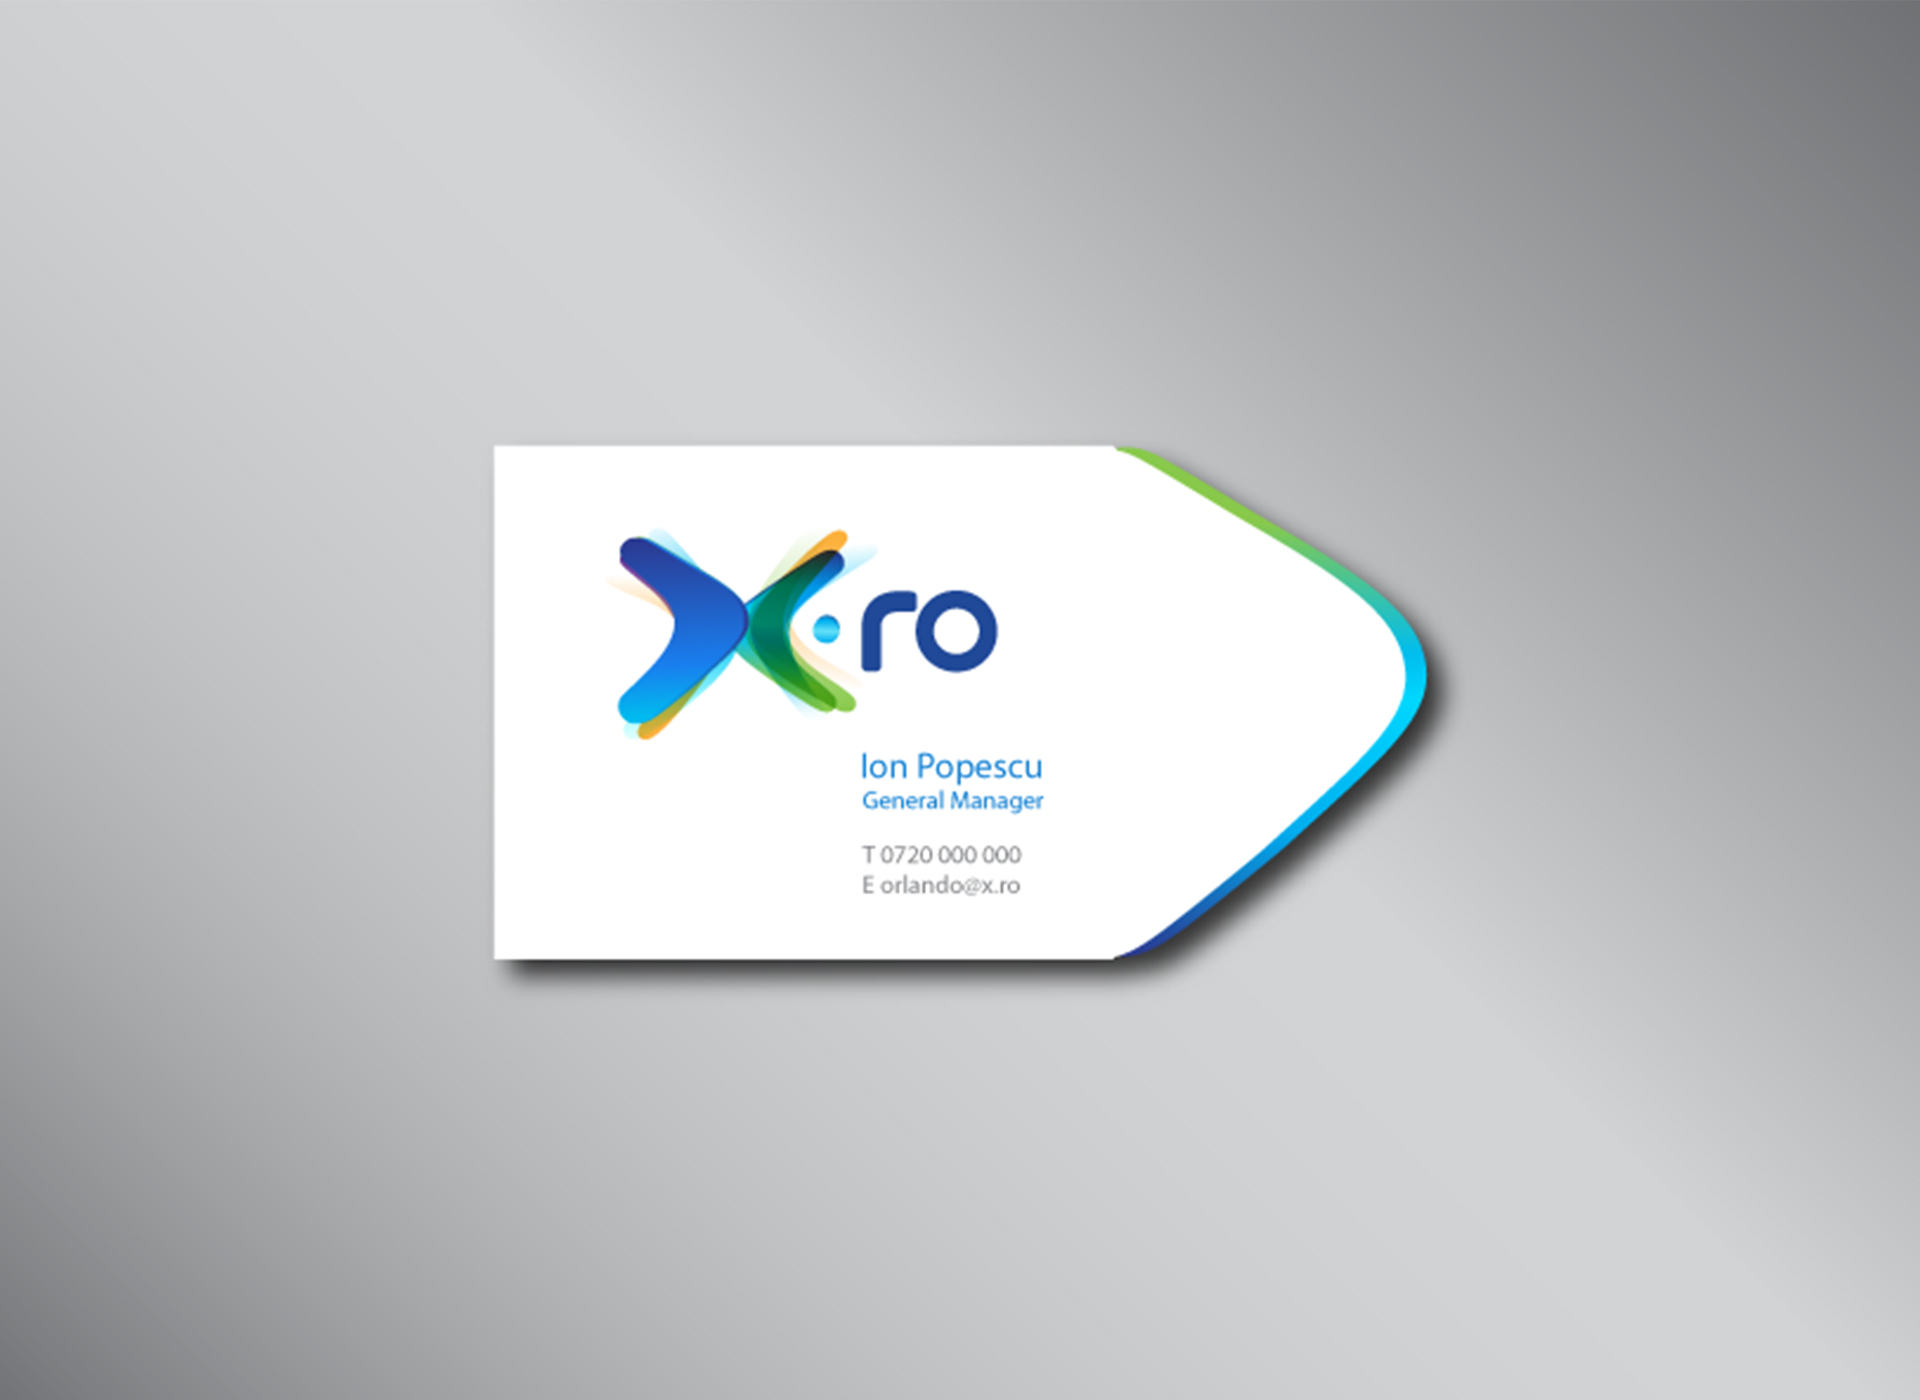 X.ro portfolio inoveo business card